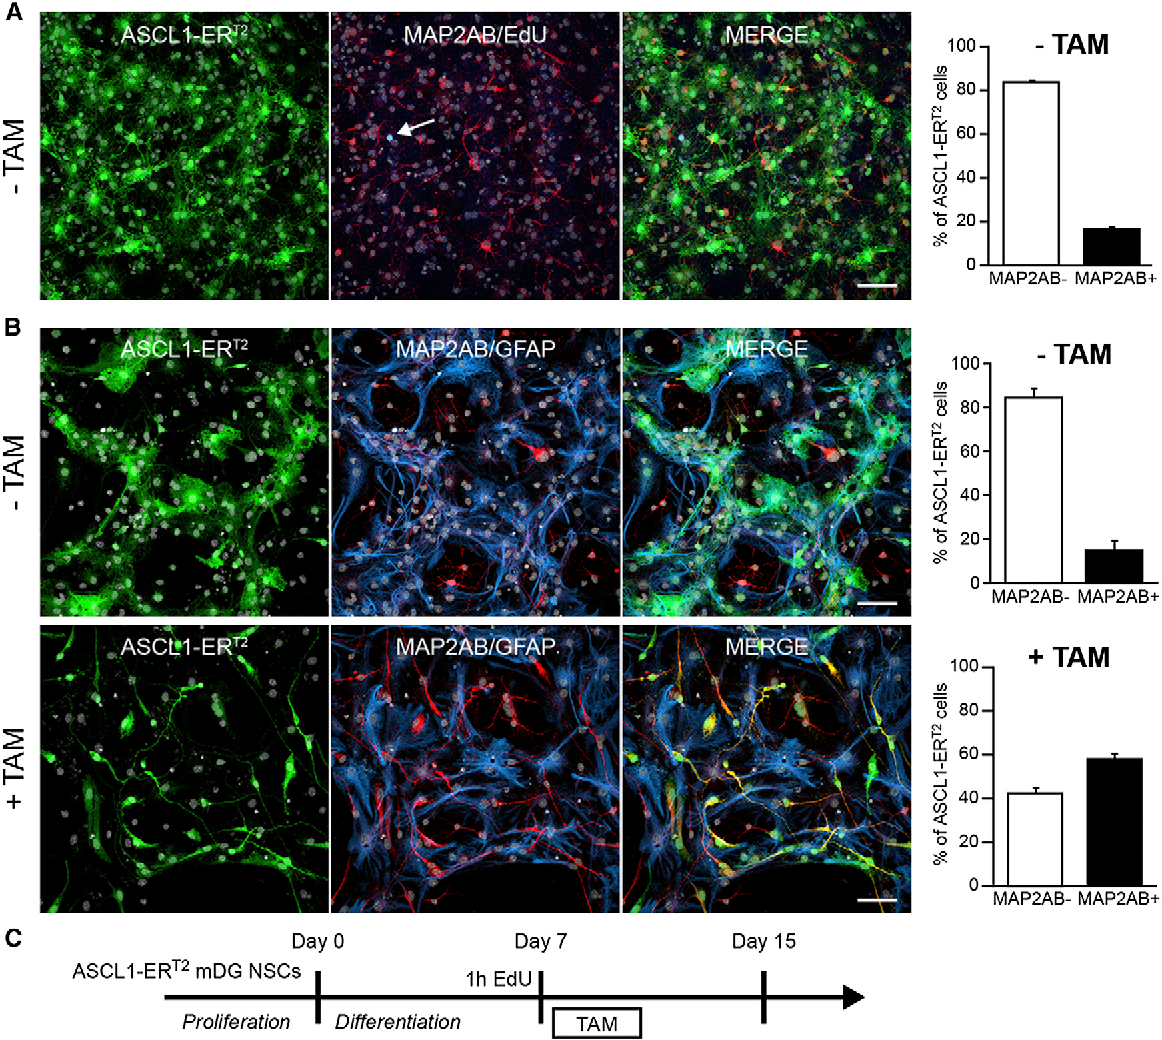 Figure 3. TAM Treatment Converts Astroglia toward a Neuronal Fate in Differentiated Ascl1-ERT2-Expressing NSPCs (A) Ascl1-ERT2-expressing cells were differentiated for 7 days in the absence of OH-TAM and mainly gave rise to MAP2AB-negative differentiated astroglia. Right bars show quantifications. Notably, virtually all of the NSPCs (>99.5%) are negative for EdU (blue), indicating that the cells have exited the cell cycle and become postmitotic. The arrow points toward one of the rare EdU-labeled cells (n = 3, biological replicates). (B) The vast majority of Ascl1-ERT2-expressing cells (green) continue to differentiate into glial cells expressing GFAP (blue) and are negative for MAP2AB (red) in the absence of OH-TAM. In striking contrast, OH-TAM exposure 7 days after initiation of differentiation results in a robust increase in MAP2AB-expressing, neuronally differentiated cells, suggesting that OH-TAM-induced ASCL1 activity is also sufficient to drive neuronal differentiation in NSPC-derived cells that have adopted an astroglial fate. Right bars show quantifications. TAM: 15.24% ± 4.84% neurons; +TAM: 57.80% ± 3.07% neurons; *p < 0.001; n = 3, biological replicates. (C) Experimental design of delayed OH-TAM treatment. Error bars represent mean ± SEM. Scale bars represent 40 mm. Nuclei were stained with DAPI (gray). See also Figure S3.